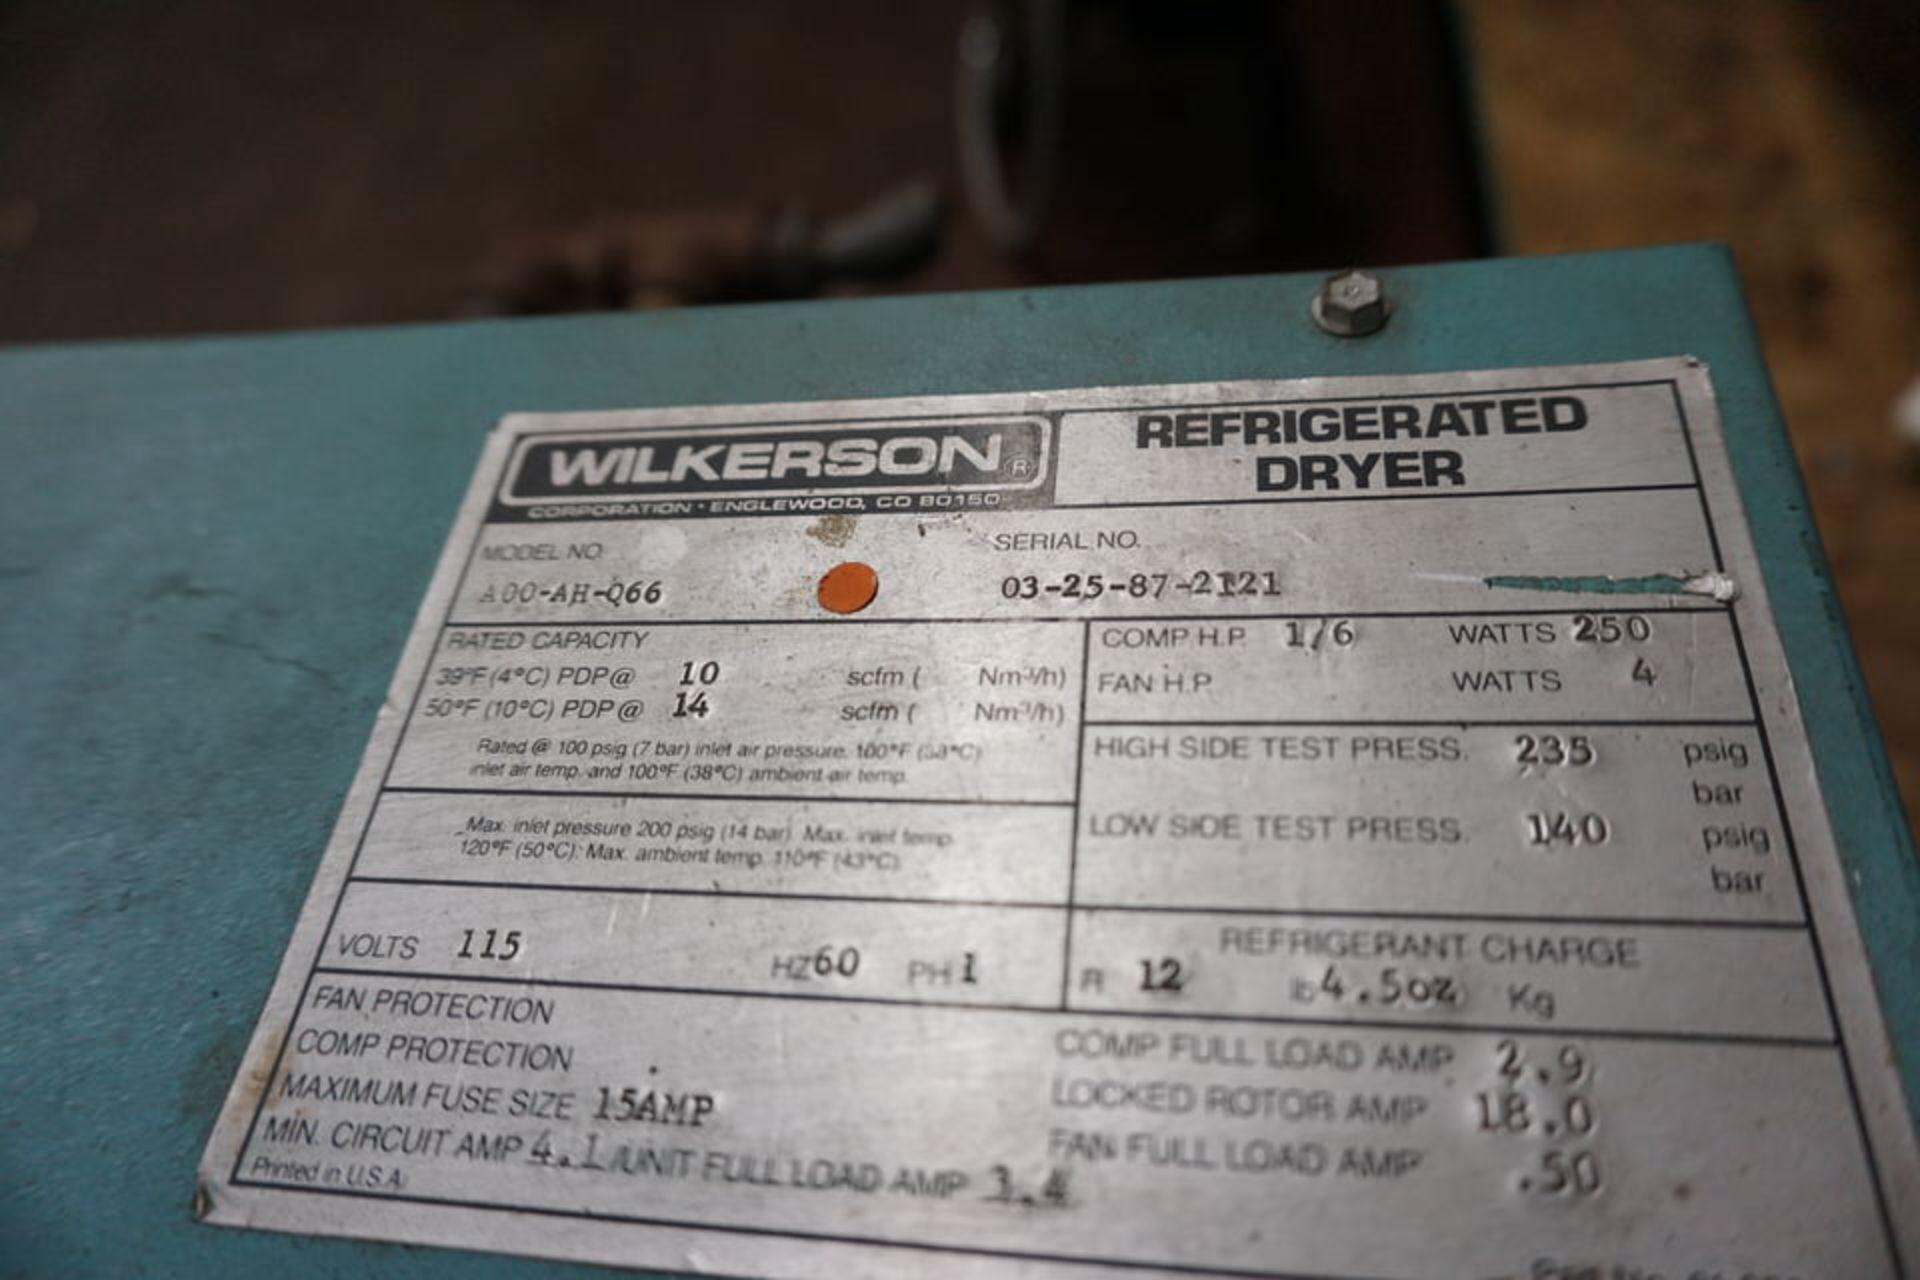 WILKERSON REFRIGERATED DRYER, MDL: A00-AH-Q66 - Image 3 of 3